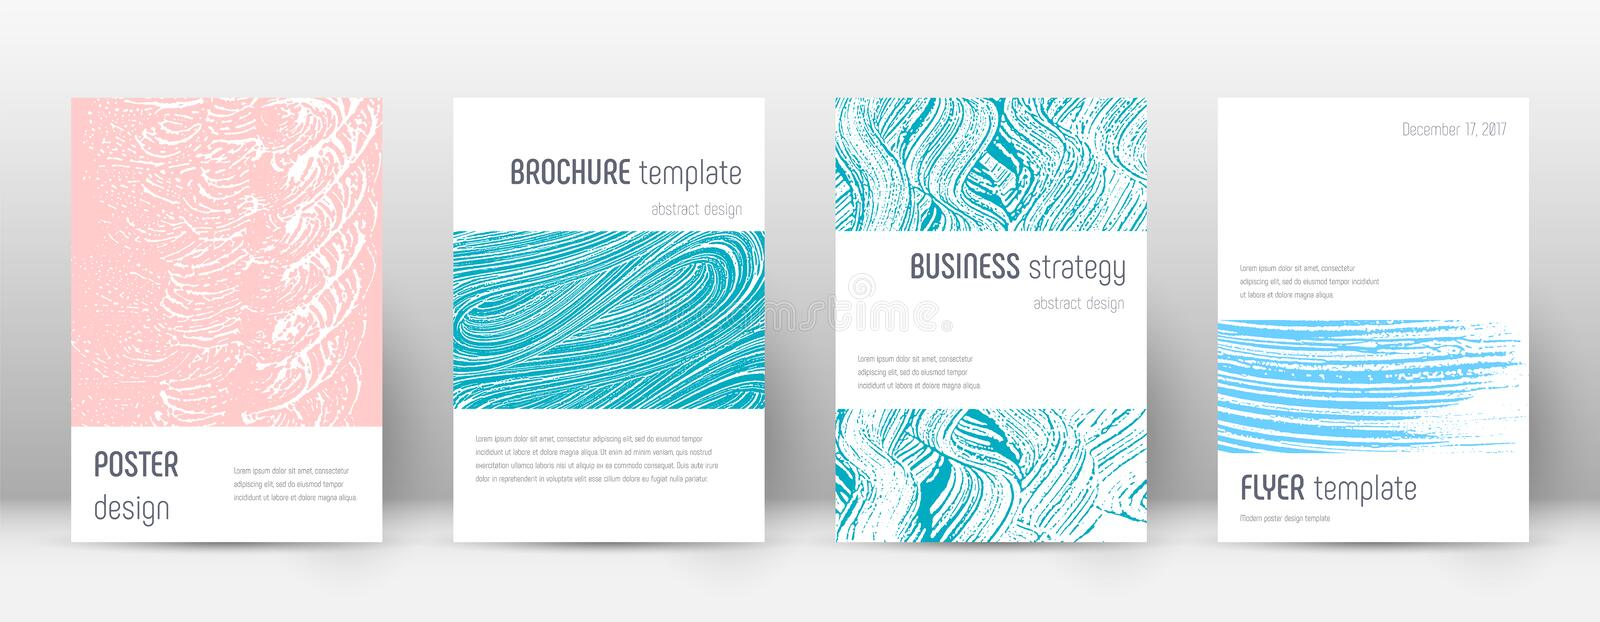 Cover page design template. Minimalistic brochure layout. Brilliant trendy abstract cover page. vector illustration